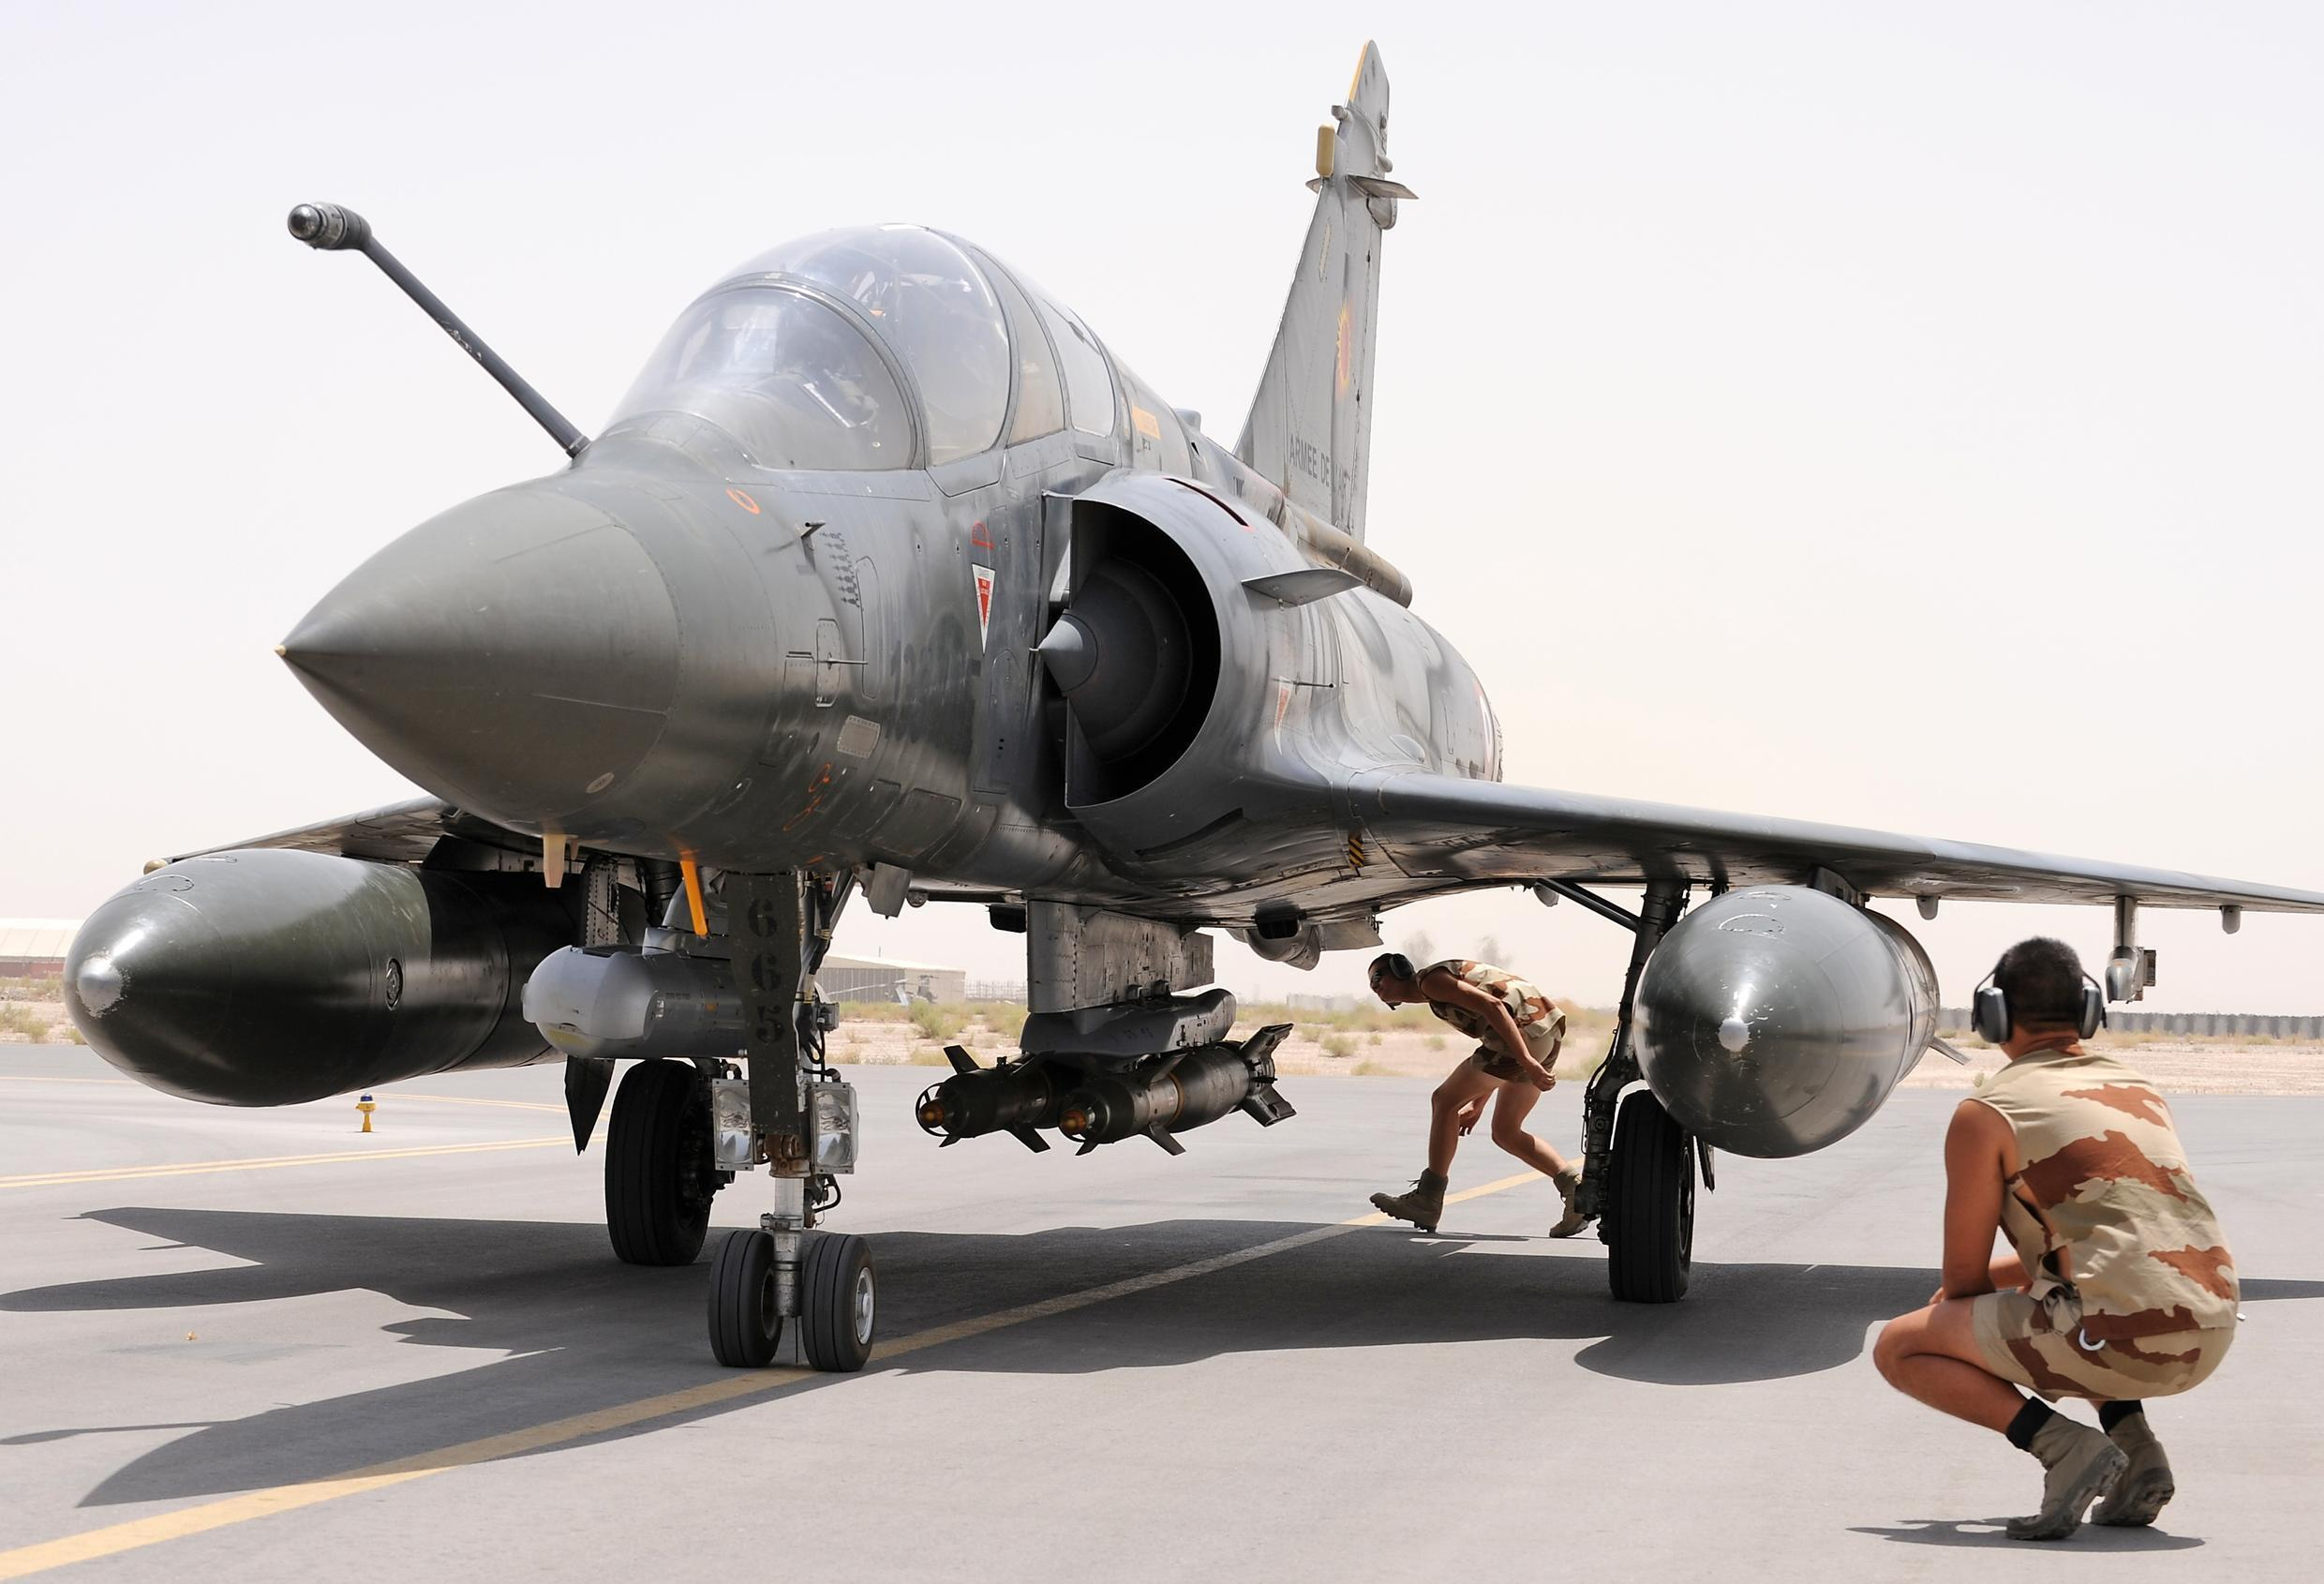 A Mirage 2000D in Kandahar, Afghanistan, in 2009